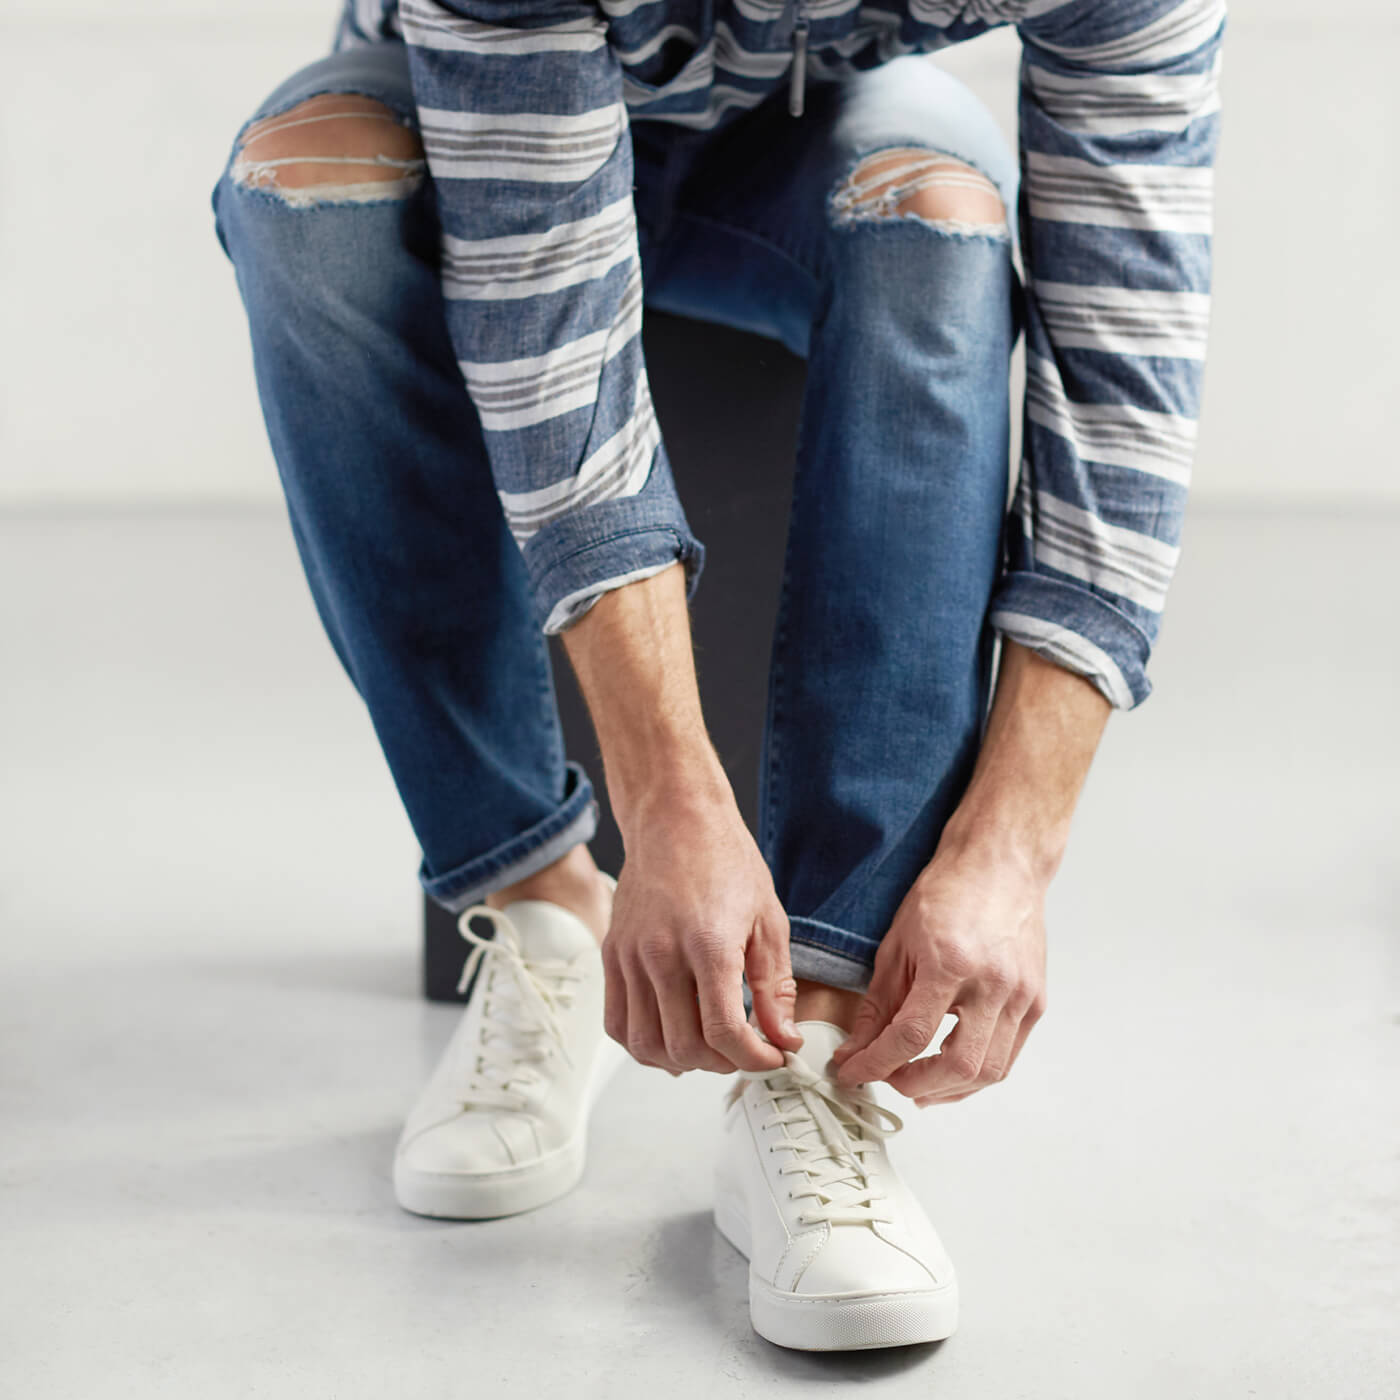 7a5fa24f9061 The Right Way to Pair Jeans with Shoes